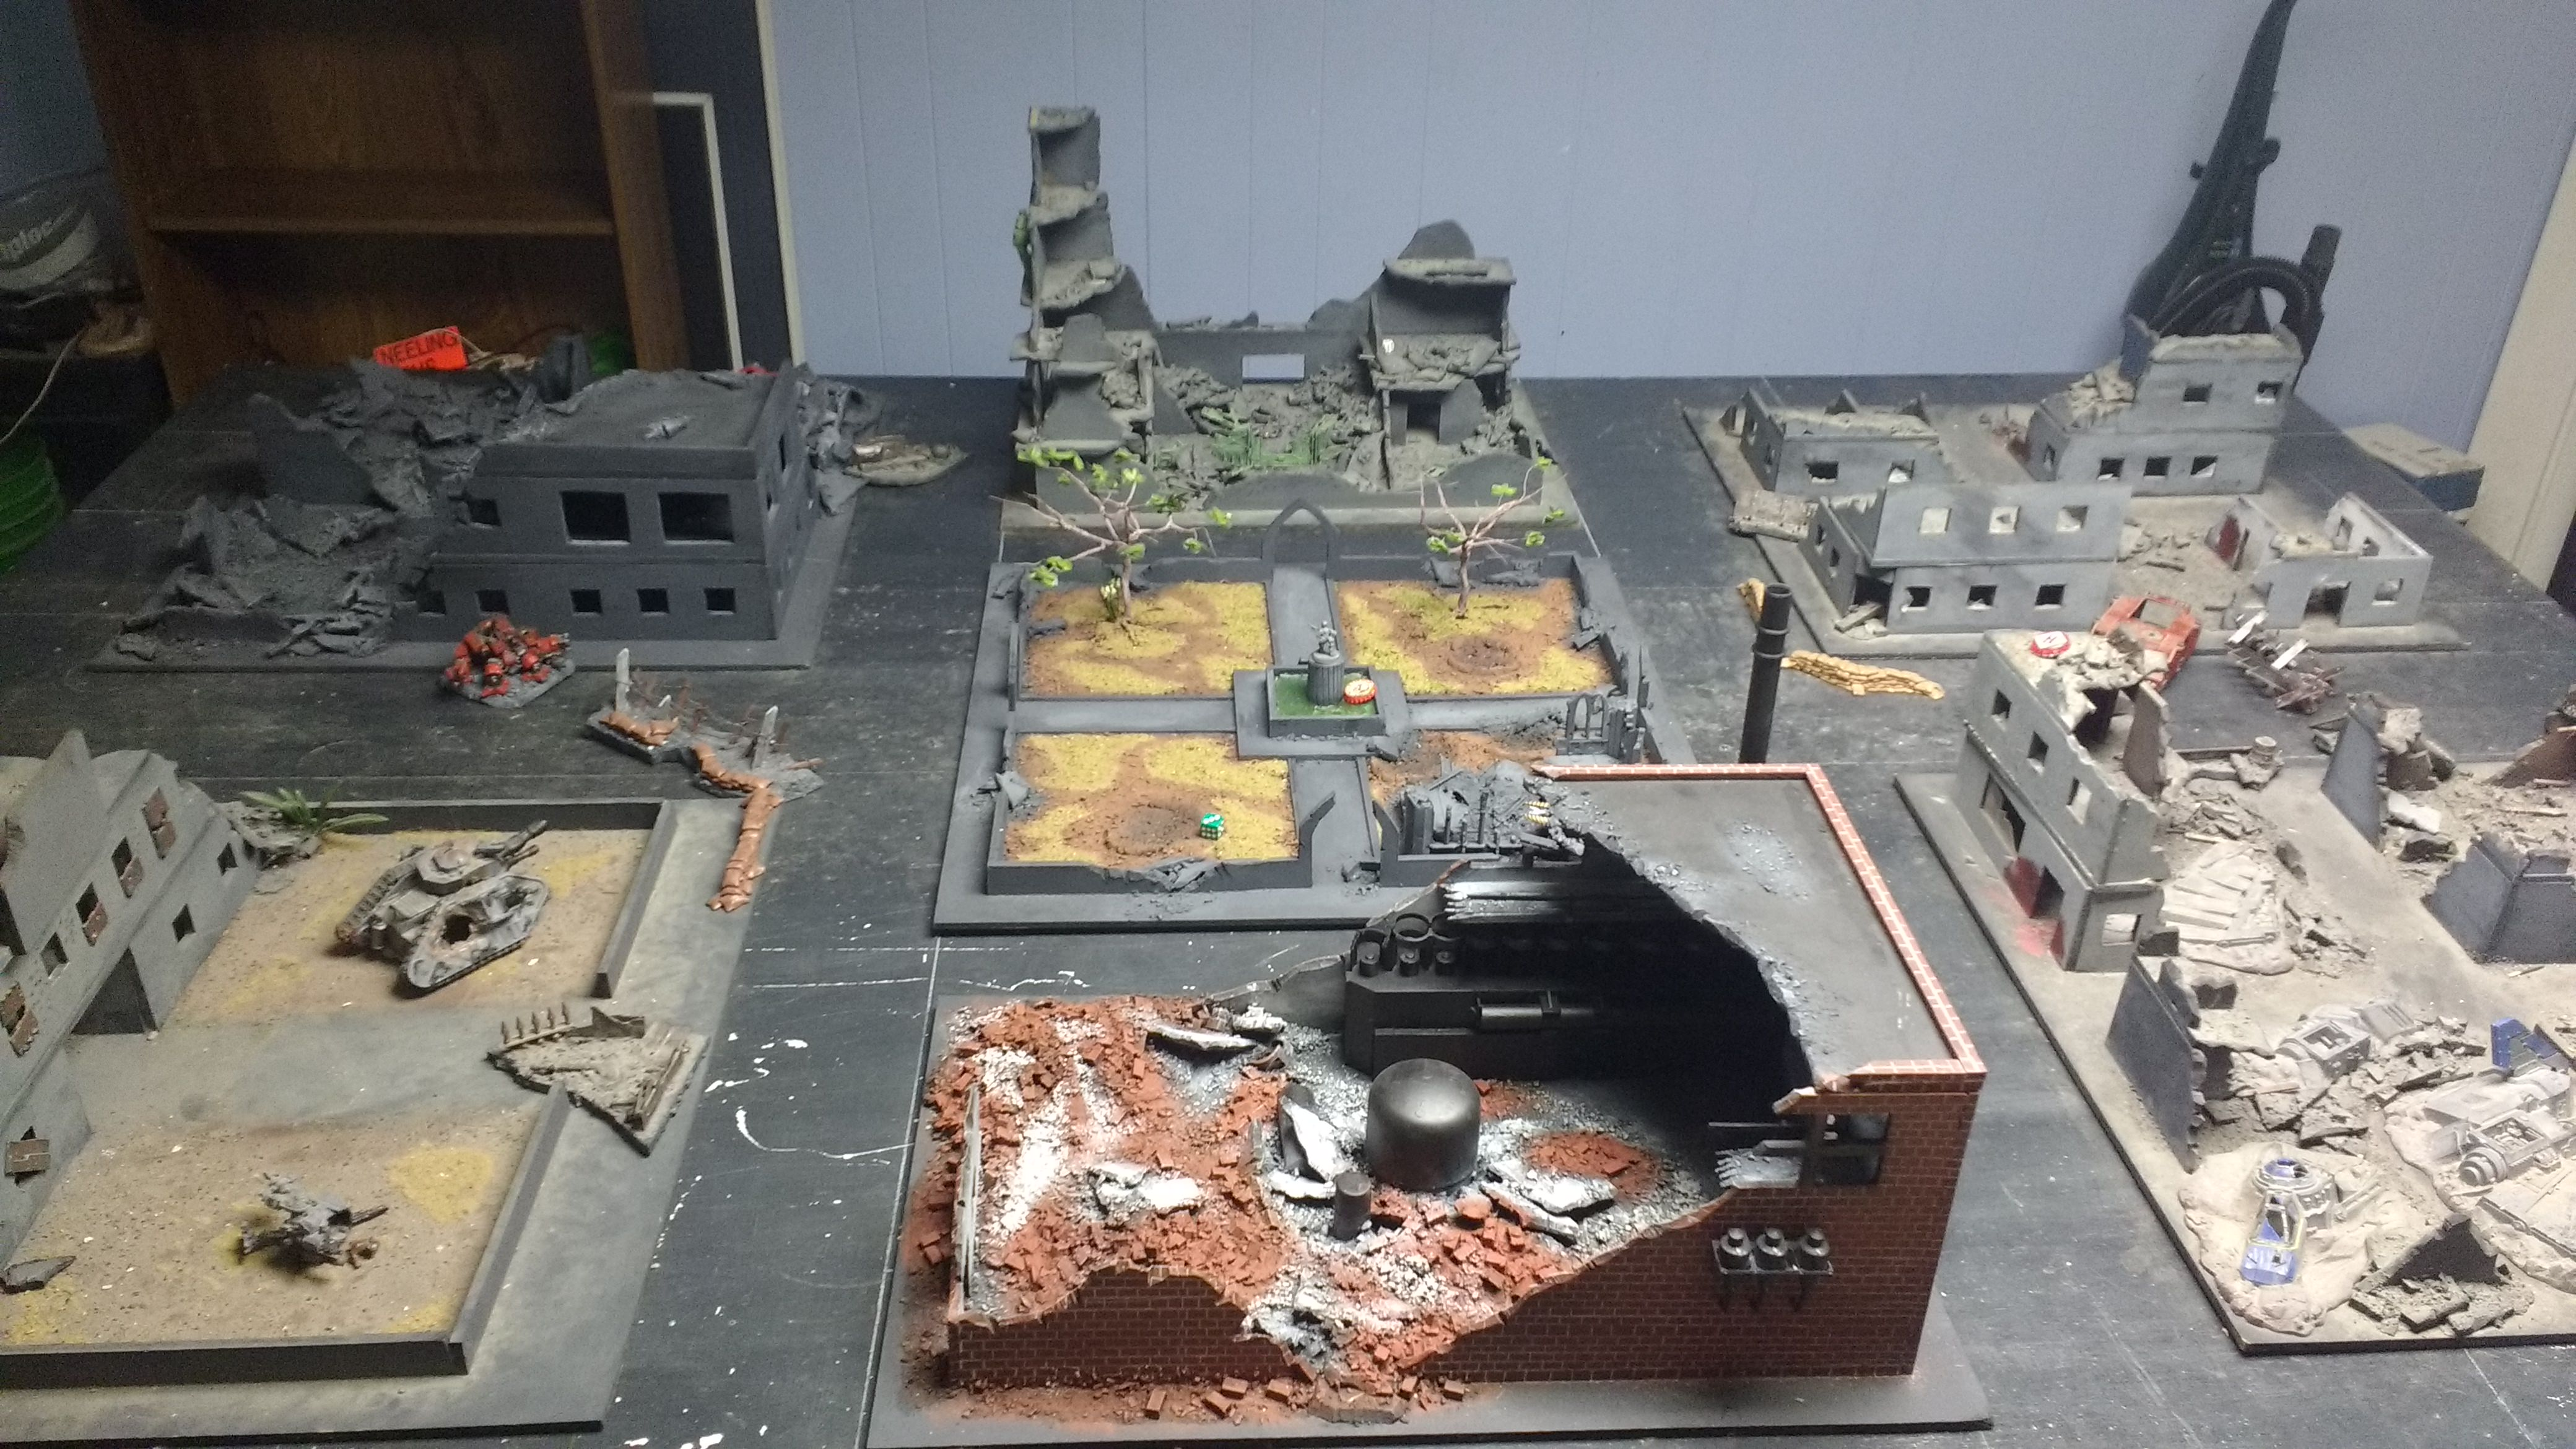 8' by 5' city fight table - Album on Imgur